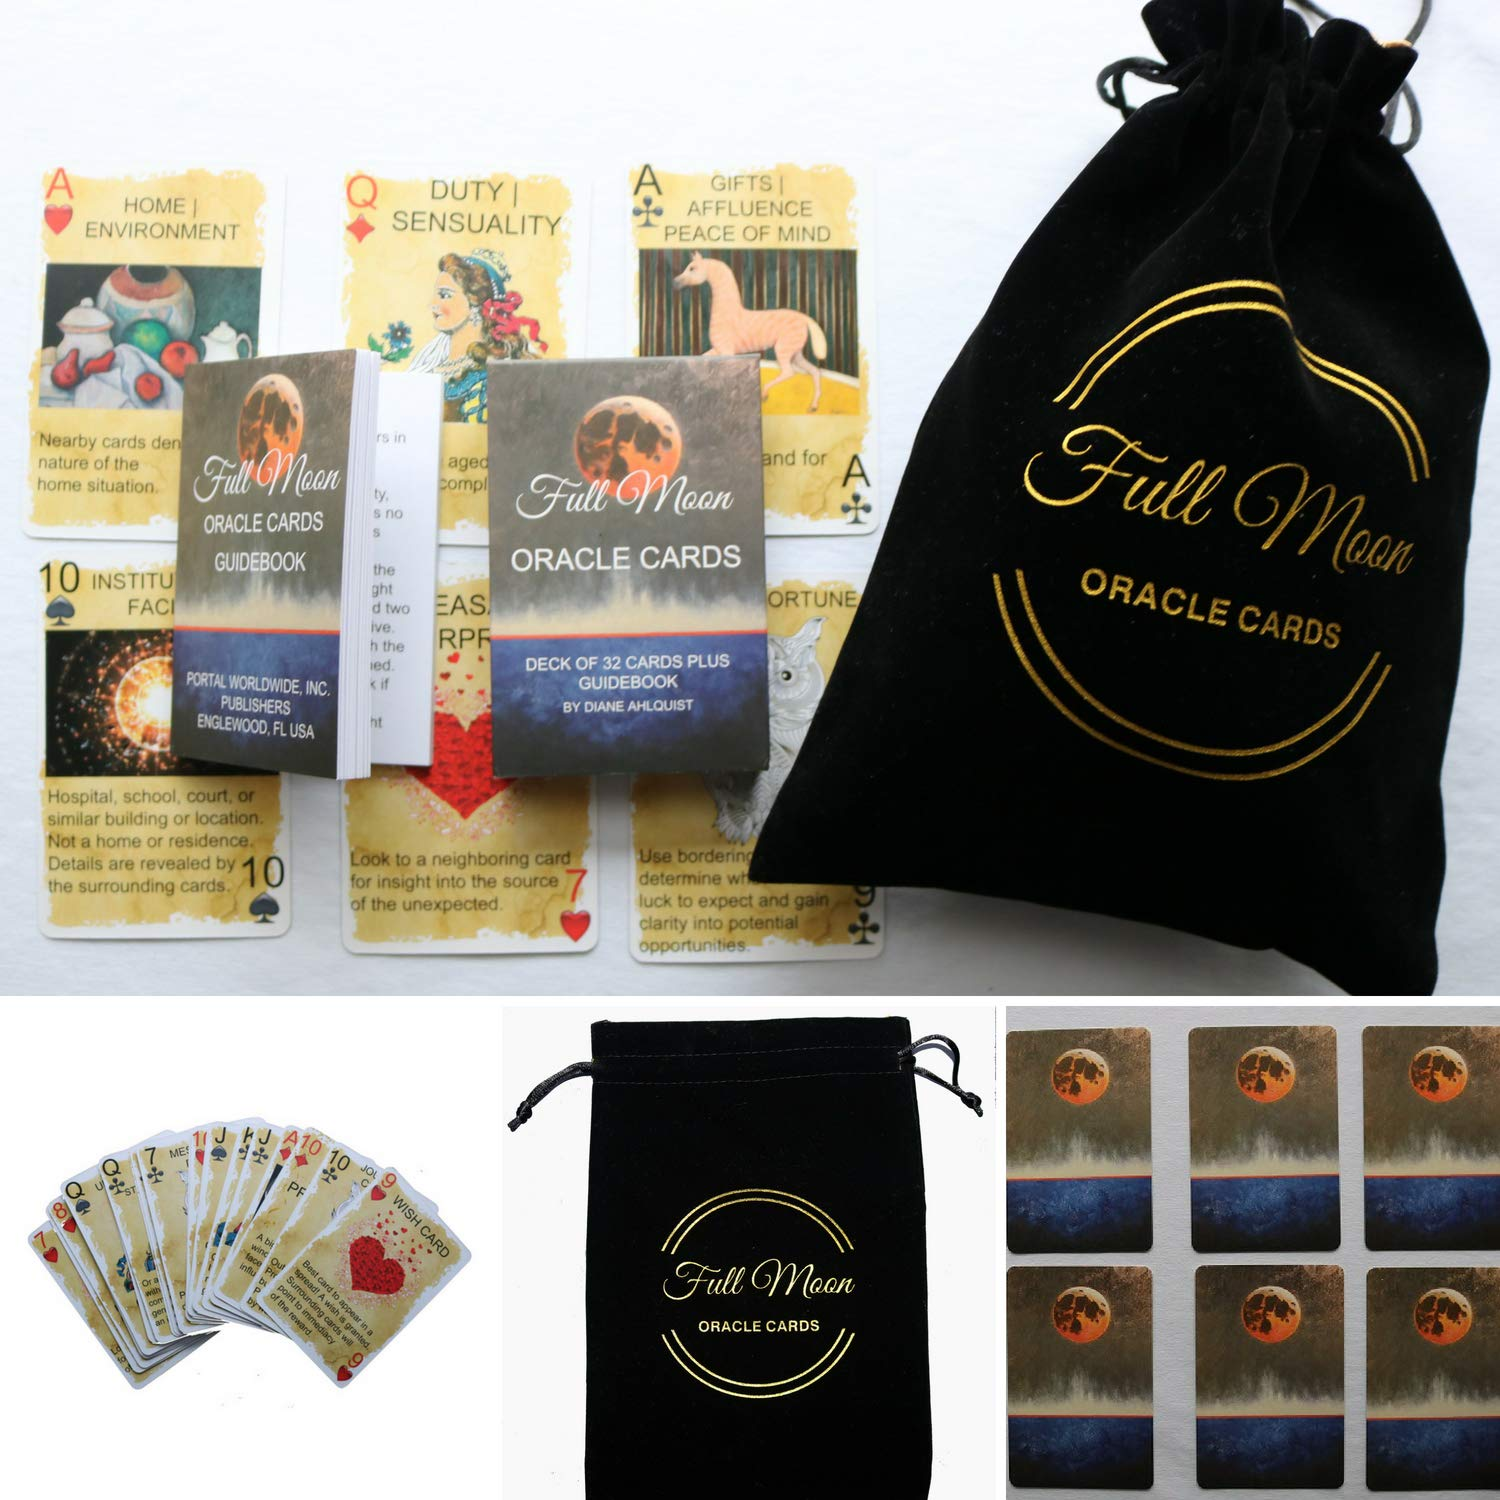 Full Moon Oracle Cards Pouch by Author of Moon Spells Diane Ahlquist (Image #1)